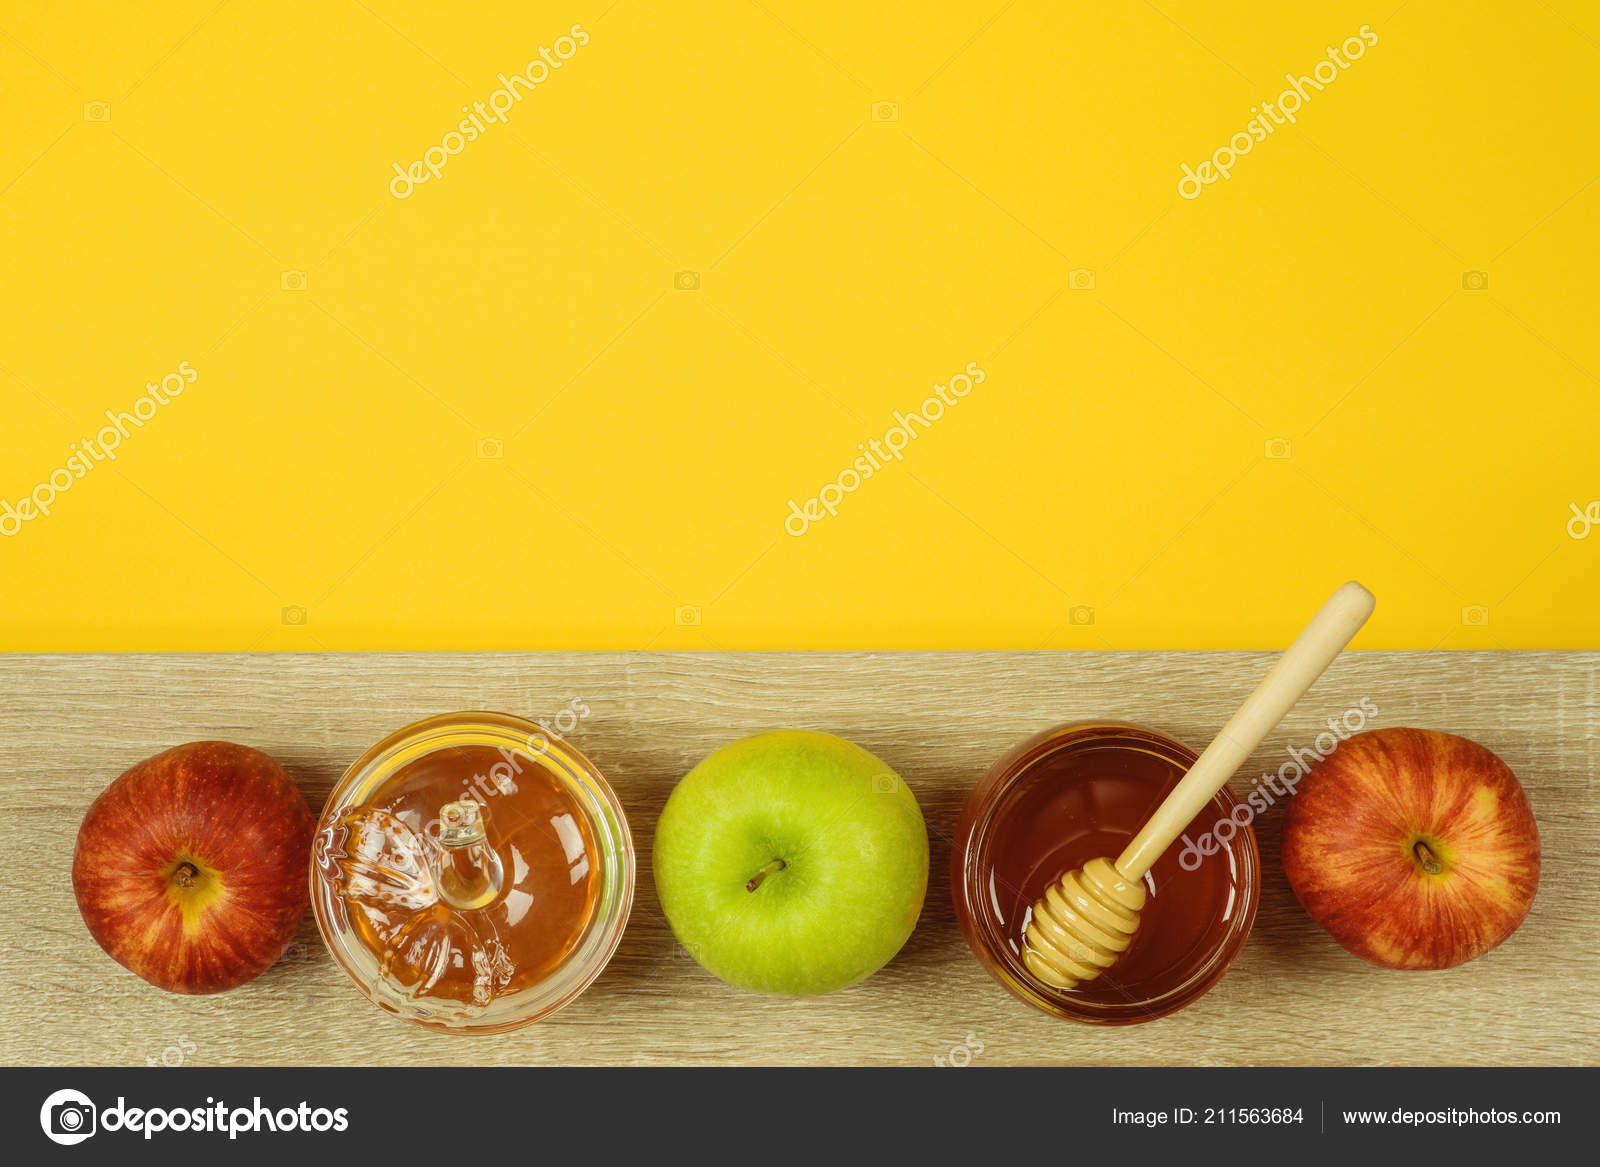 Rosh Hashanah Backdrop 8x6ft Happy New Year Photography Background Sunny Sunlight Shofar Sweet Honey Apple Wooden Table Nature Scenery Jewish Traditional Holiday Photo Prop Studio Decor